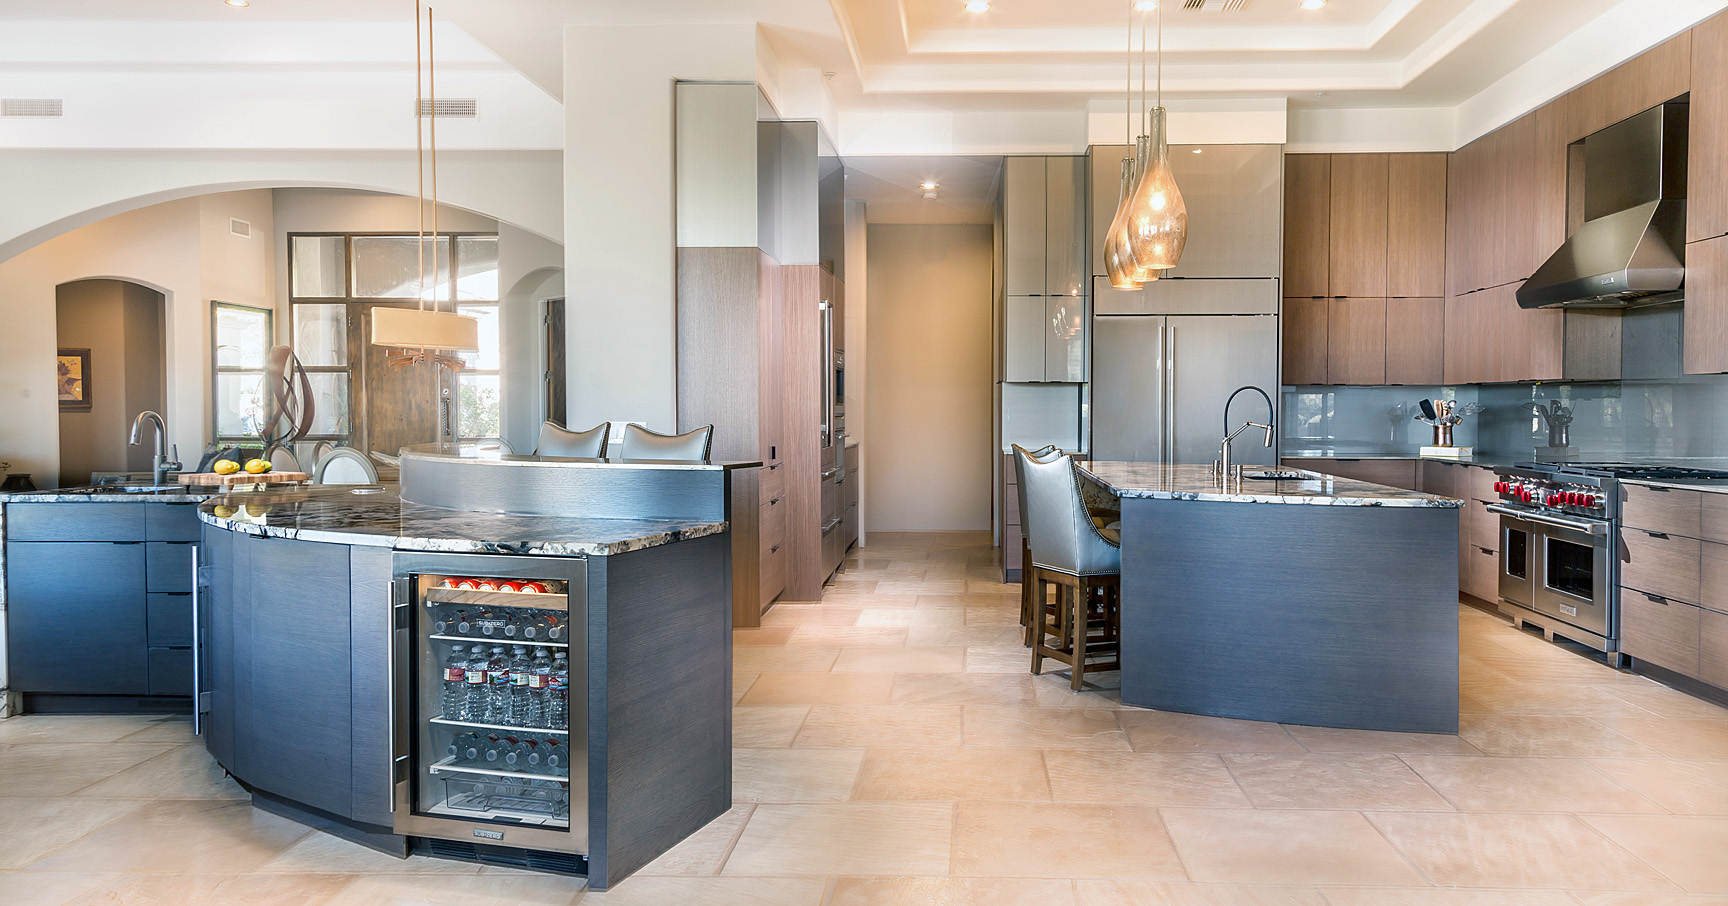 contemporary-custom-designed-kitchen-cabinets-with-lacquered-automotive-finish-cabinets-by-paul-rene-furniture-and-cabinets-phoenix